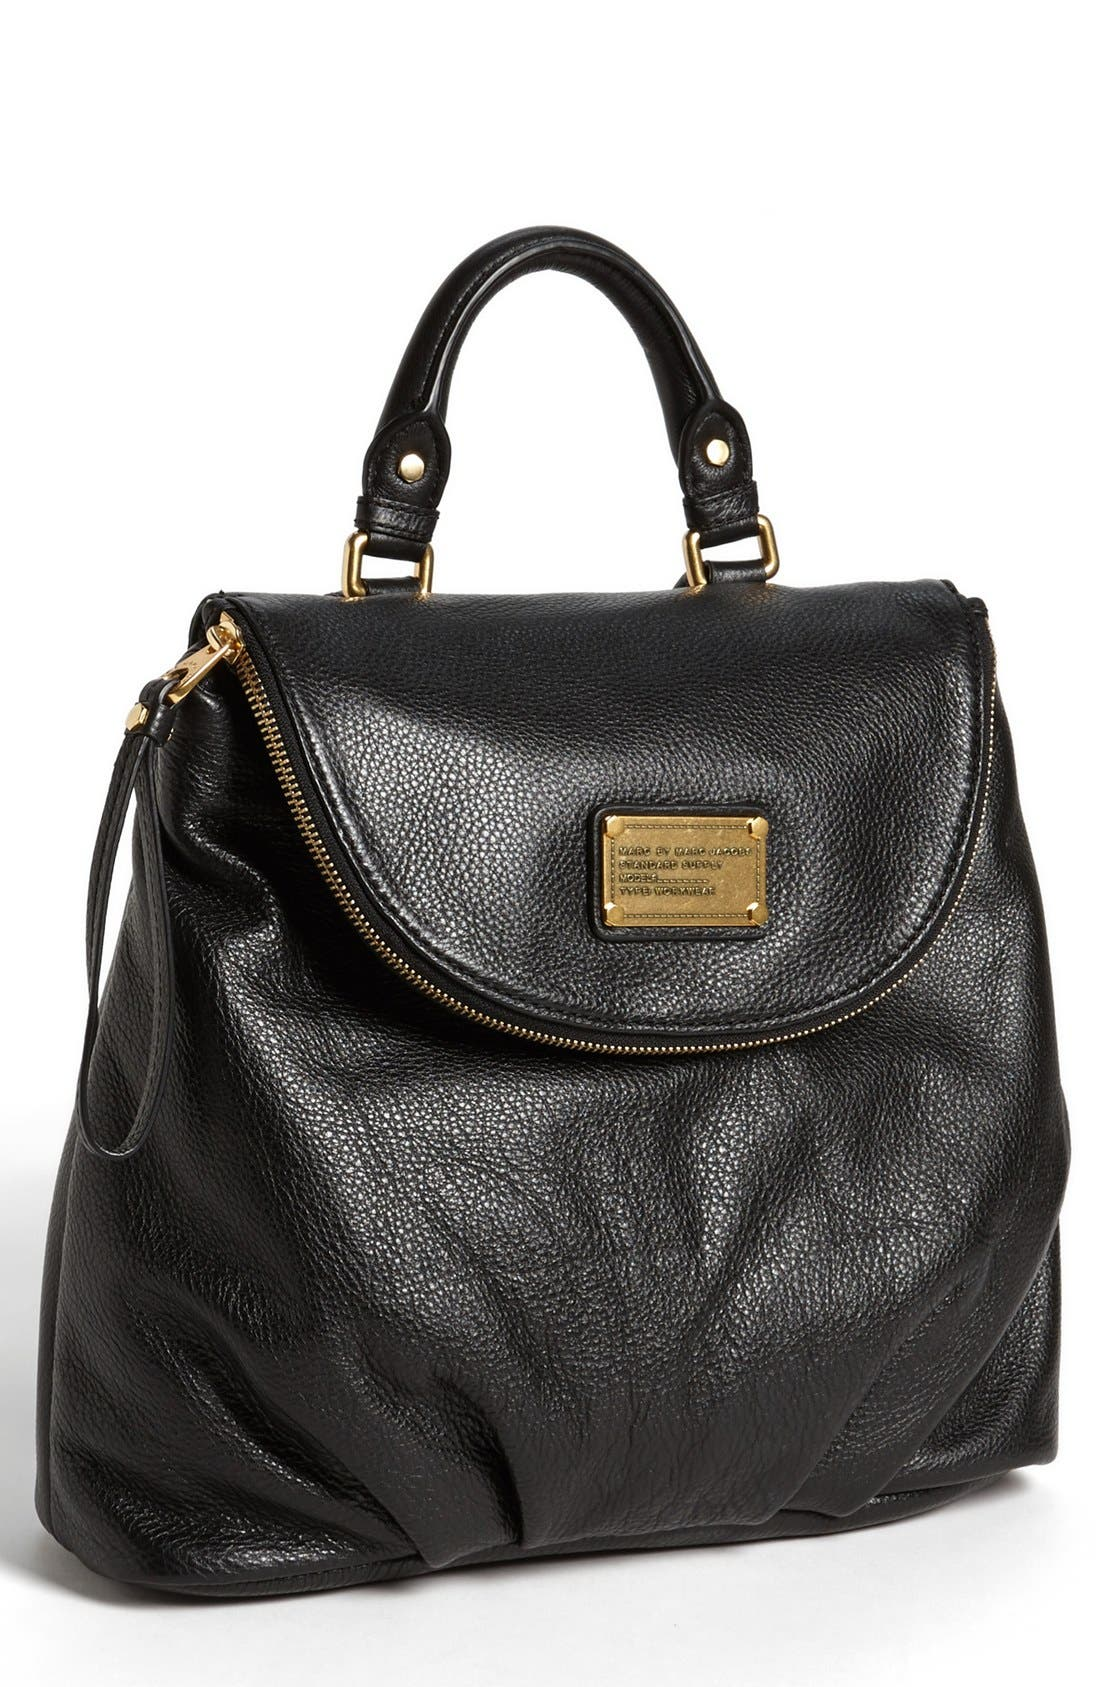 MARC BY MARC JACOBS 'Classic Q - Mariska' Backpack,                             Main thumbnail 1, color,                             001